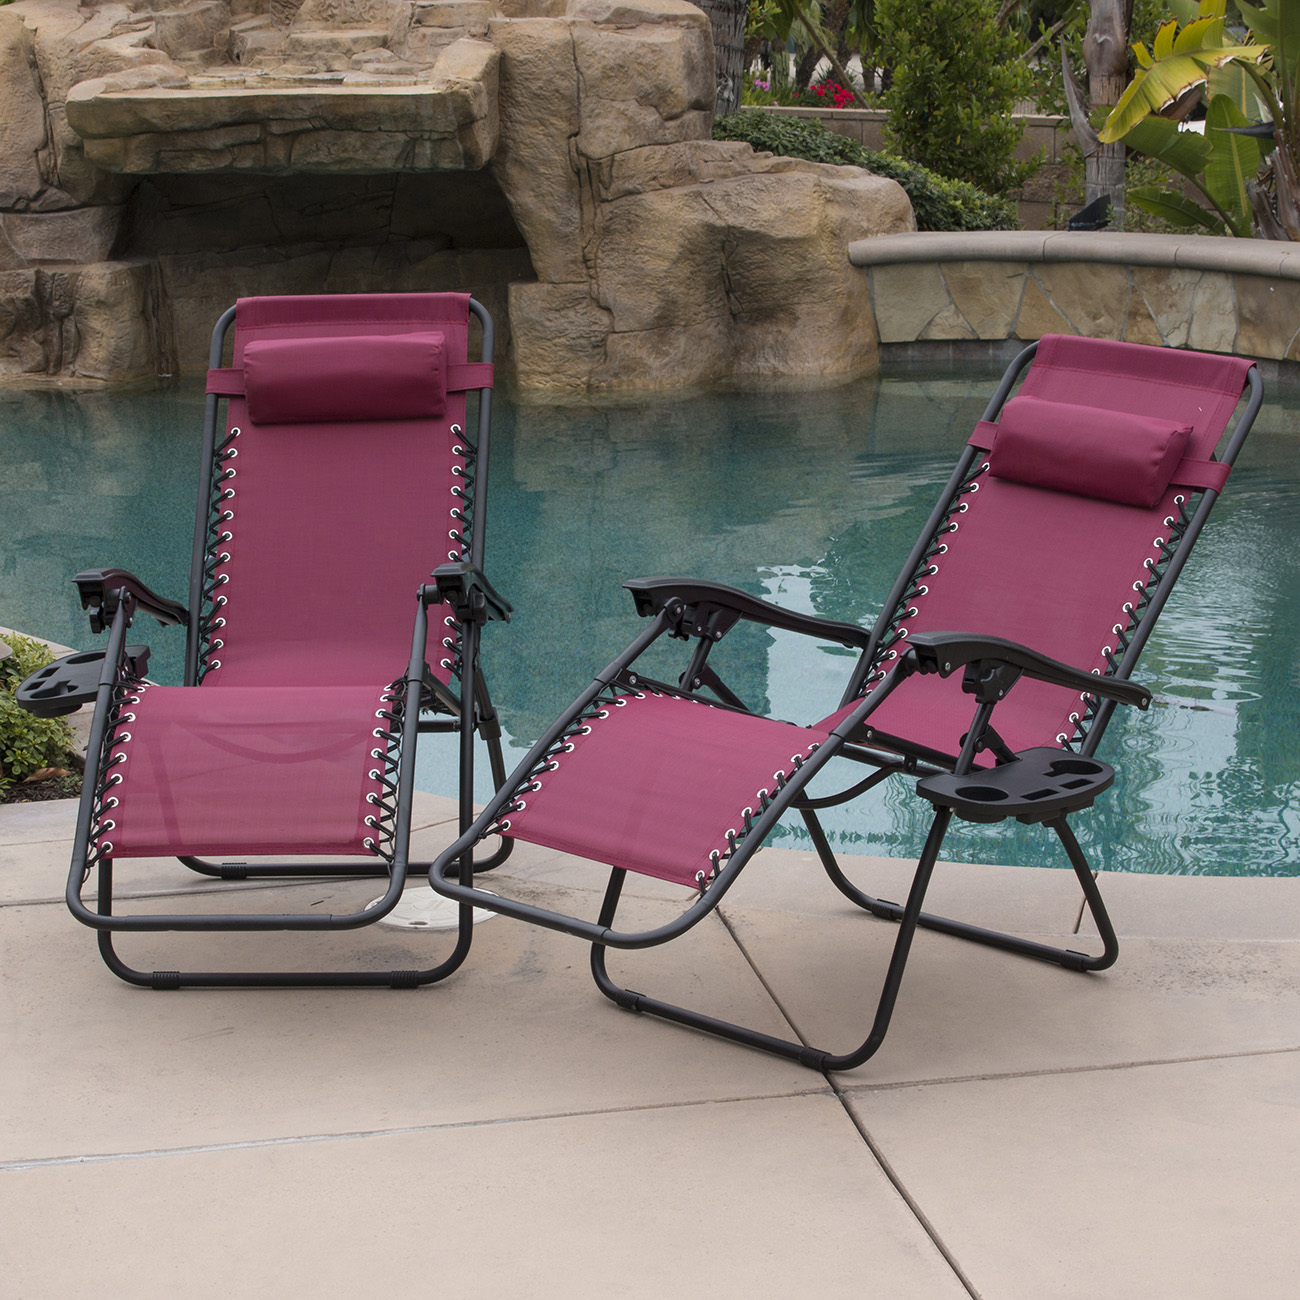 Commercial Pool Lounge Chairs 2 Set Lounge Chair Zero Gravity Folding Recliner Patio